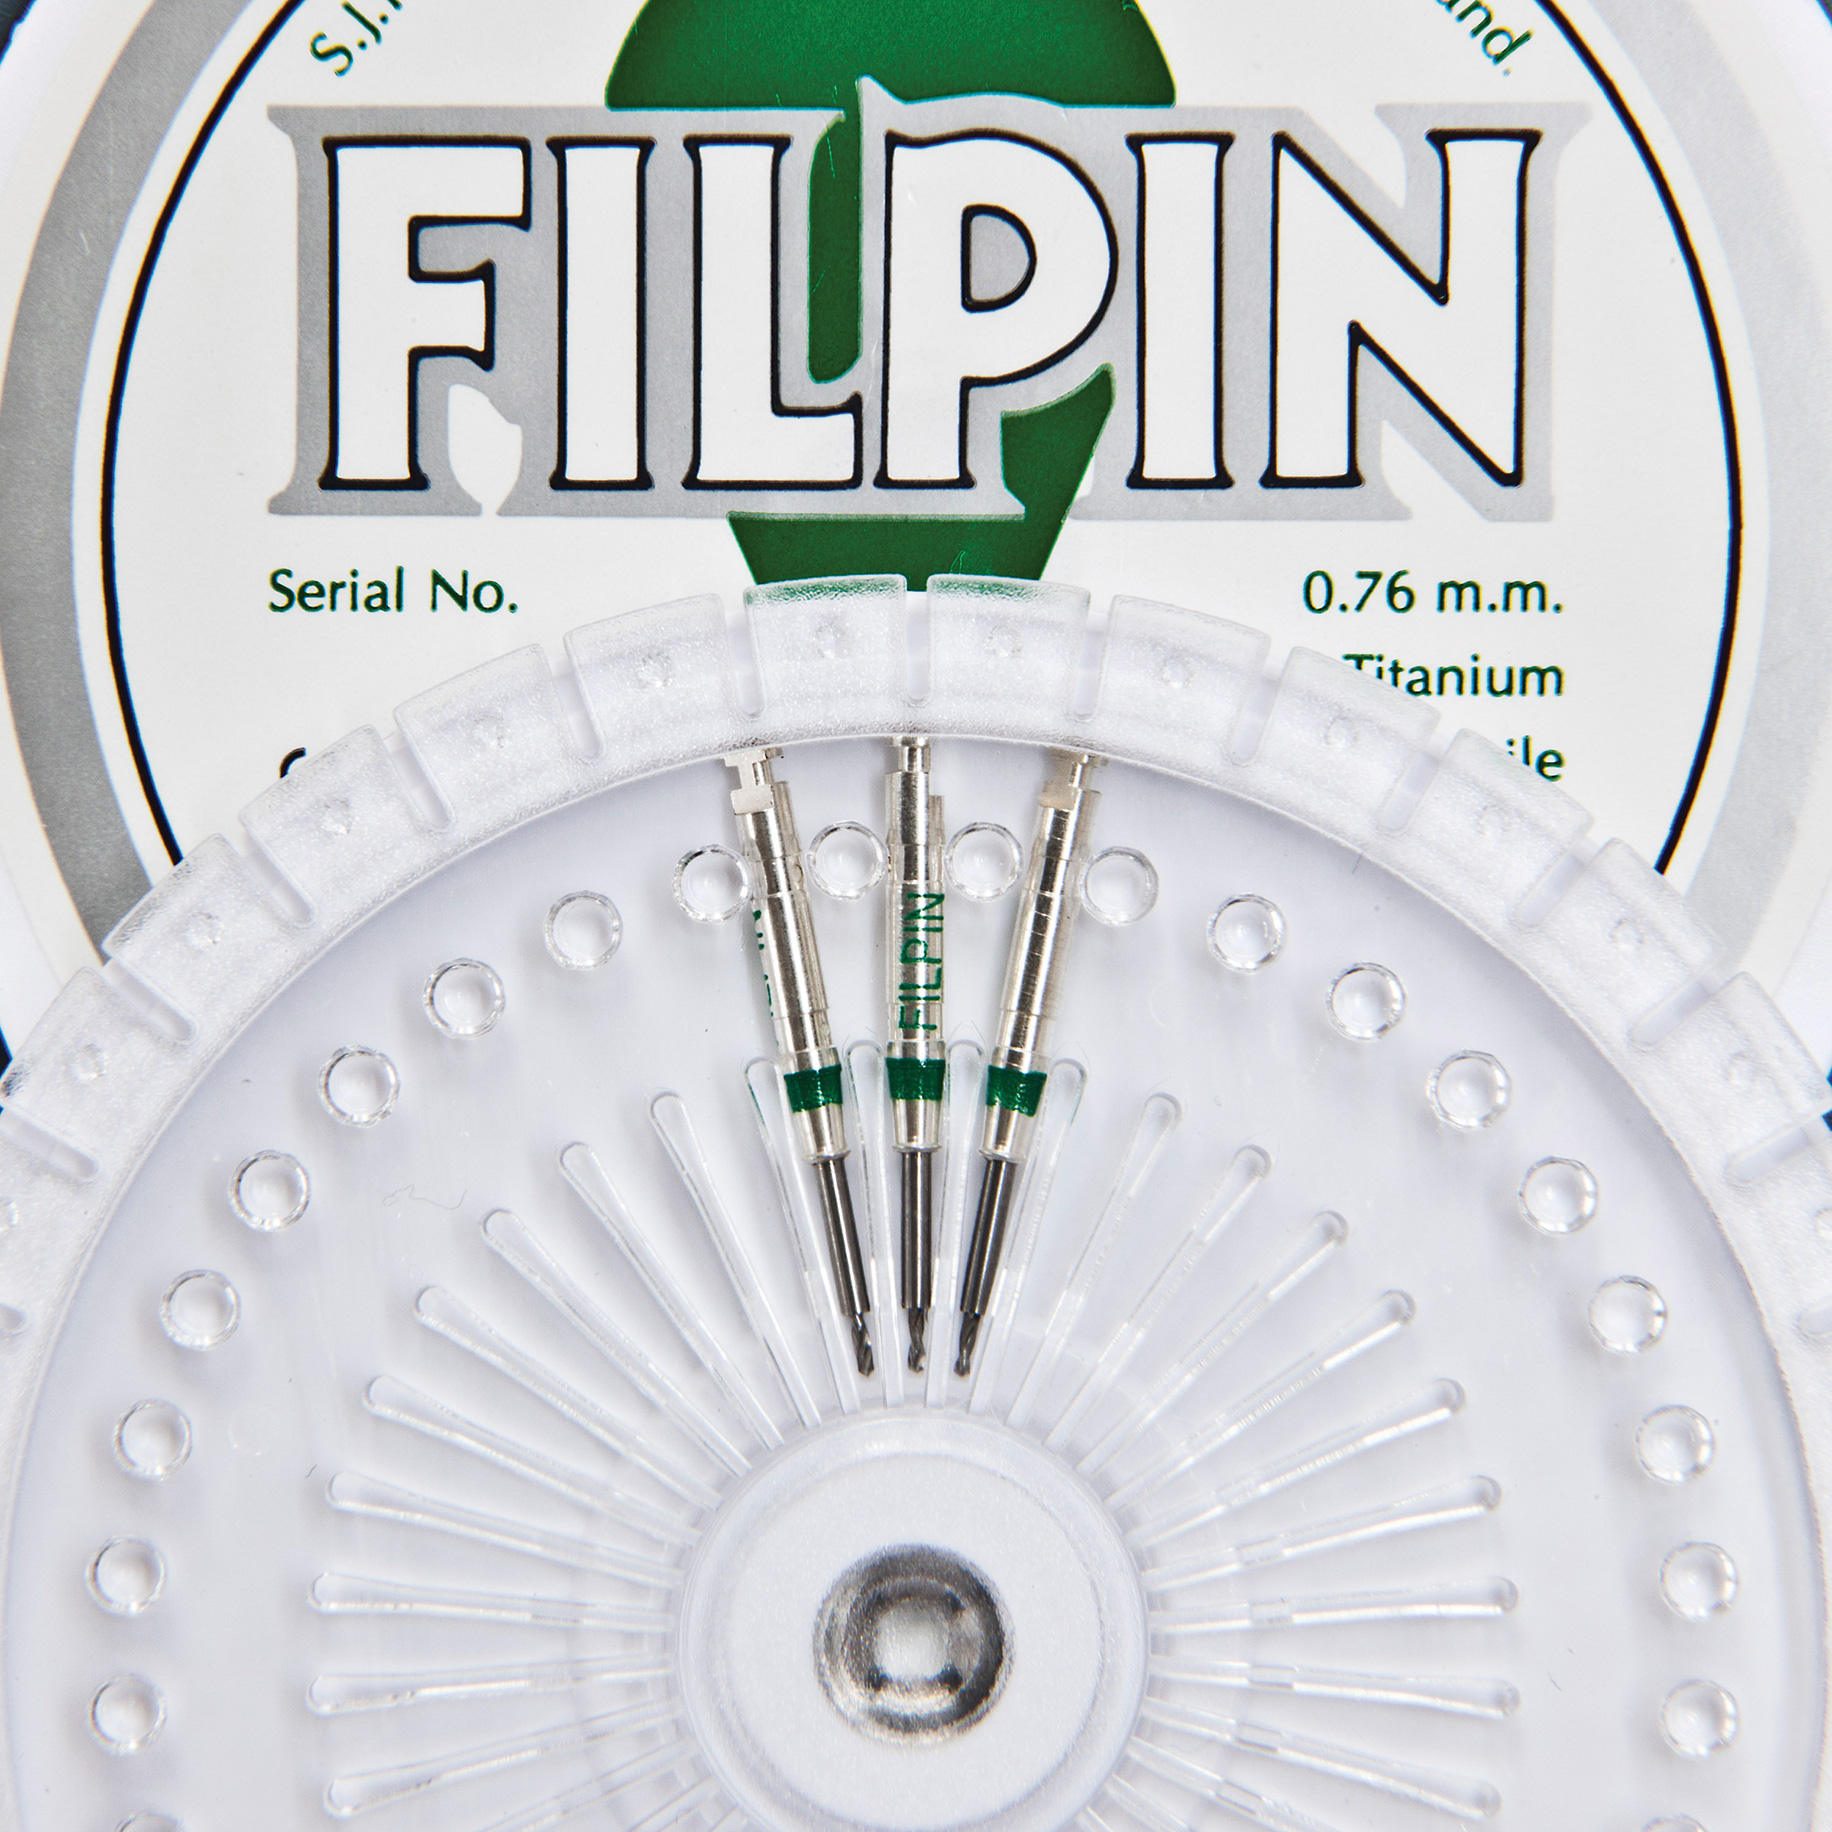 Stainless Steel Precision Drills - Filpin Drills Green 0.76mm - Medium